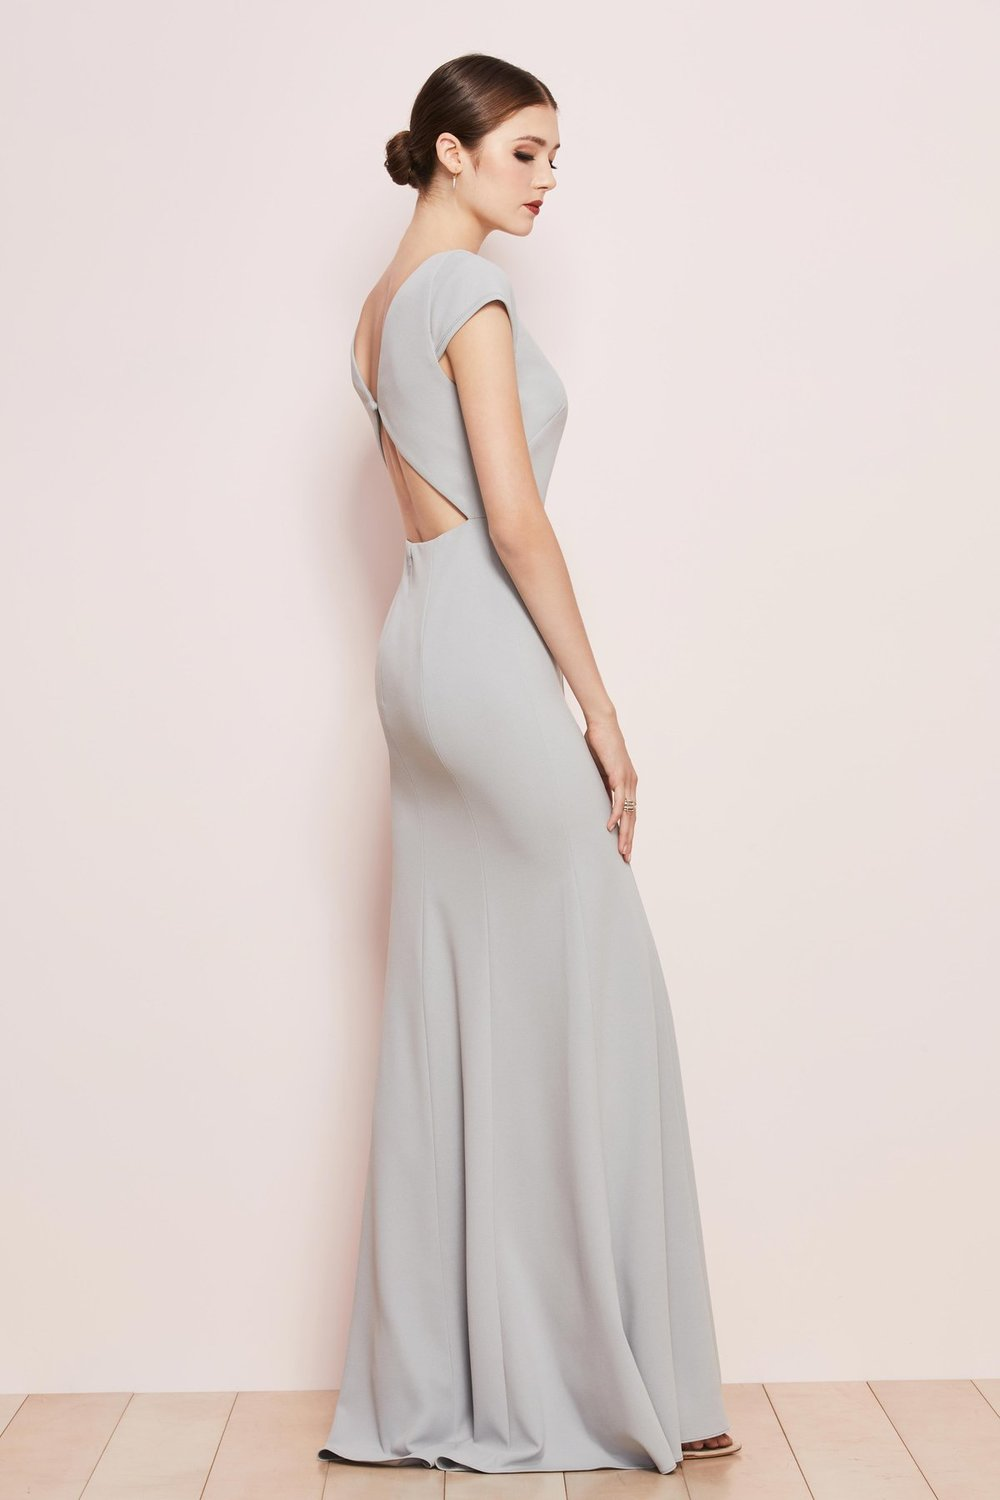 Parker by Watters in French Blue ballad crepe back view with diamond detail and back button clasp.JPG